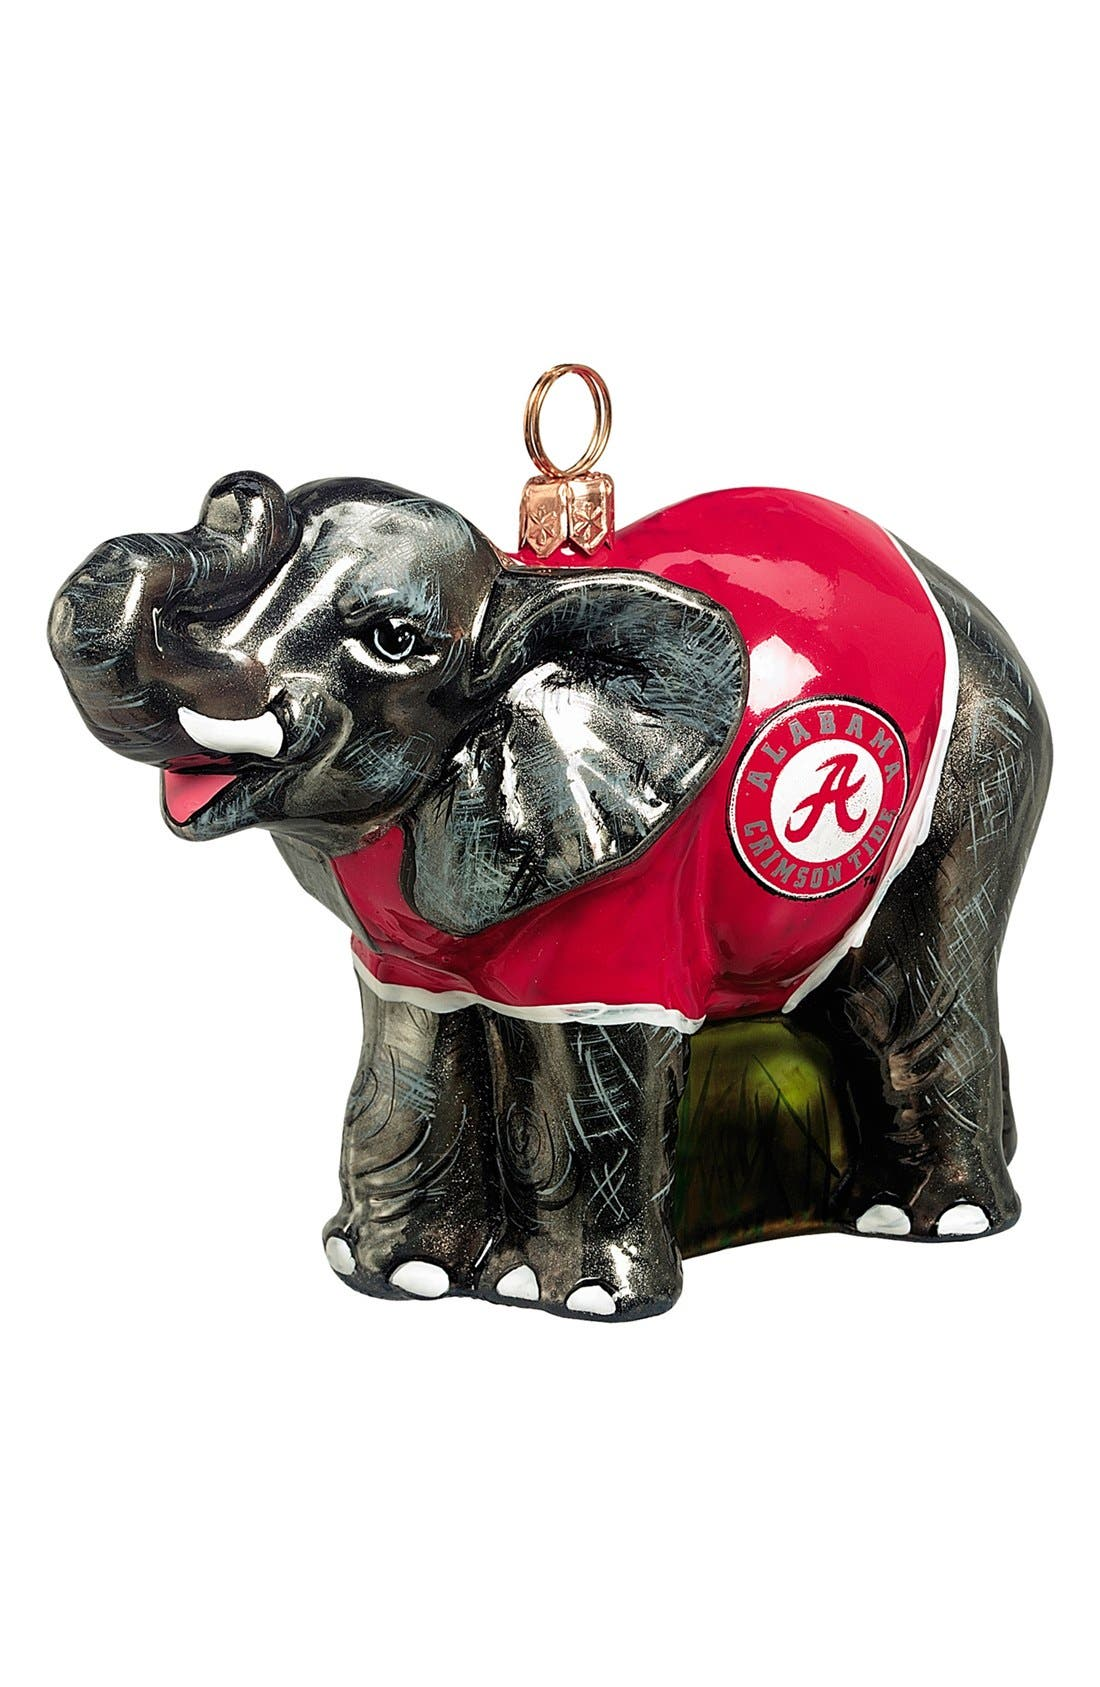 Alternate Image 1 Selected - Joy to the World Collectibles 'Collegiate Elephant - Alabama' Ornament